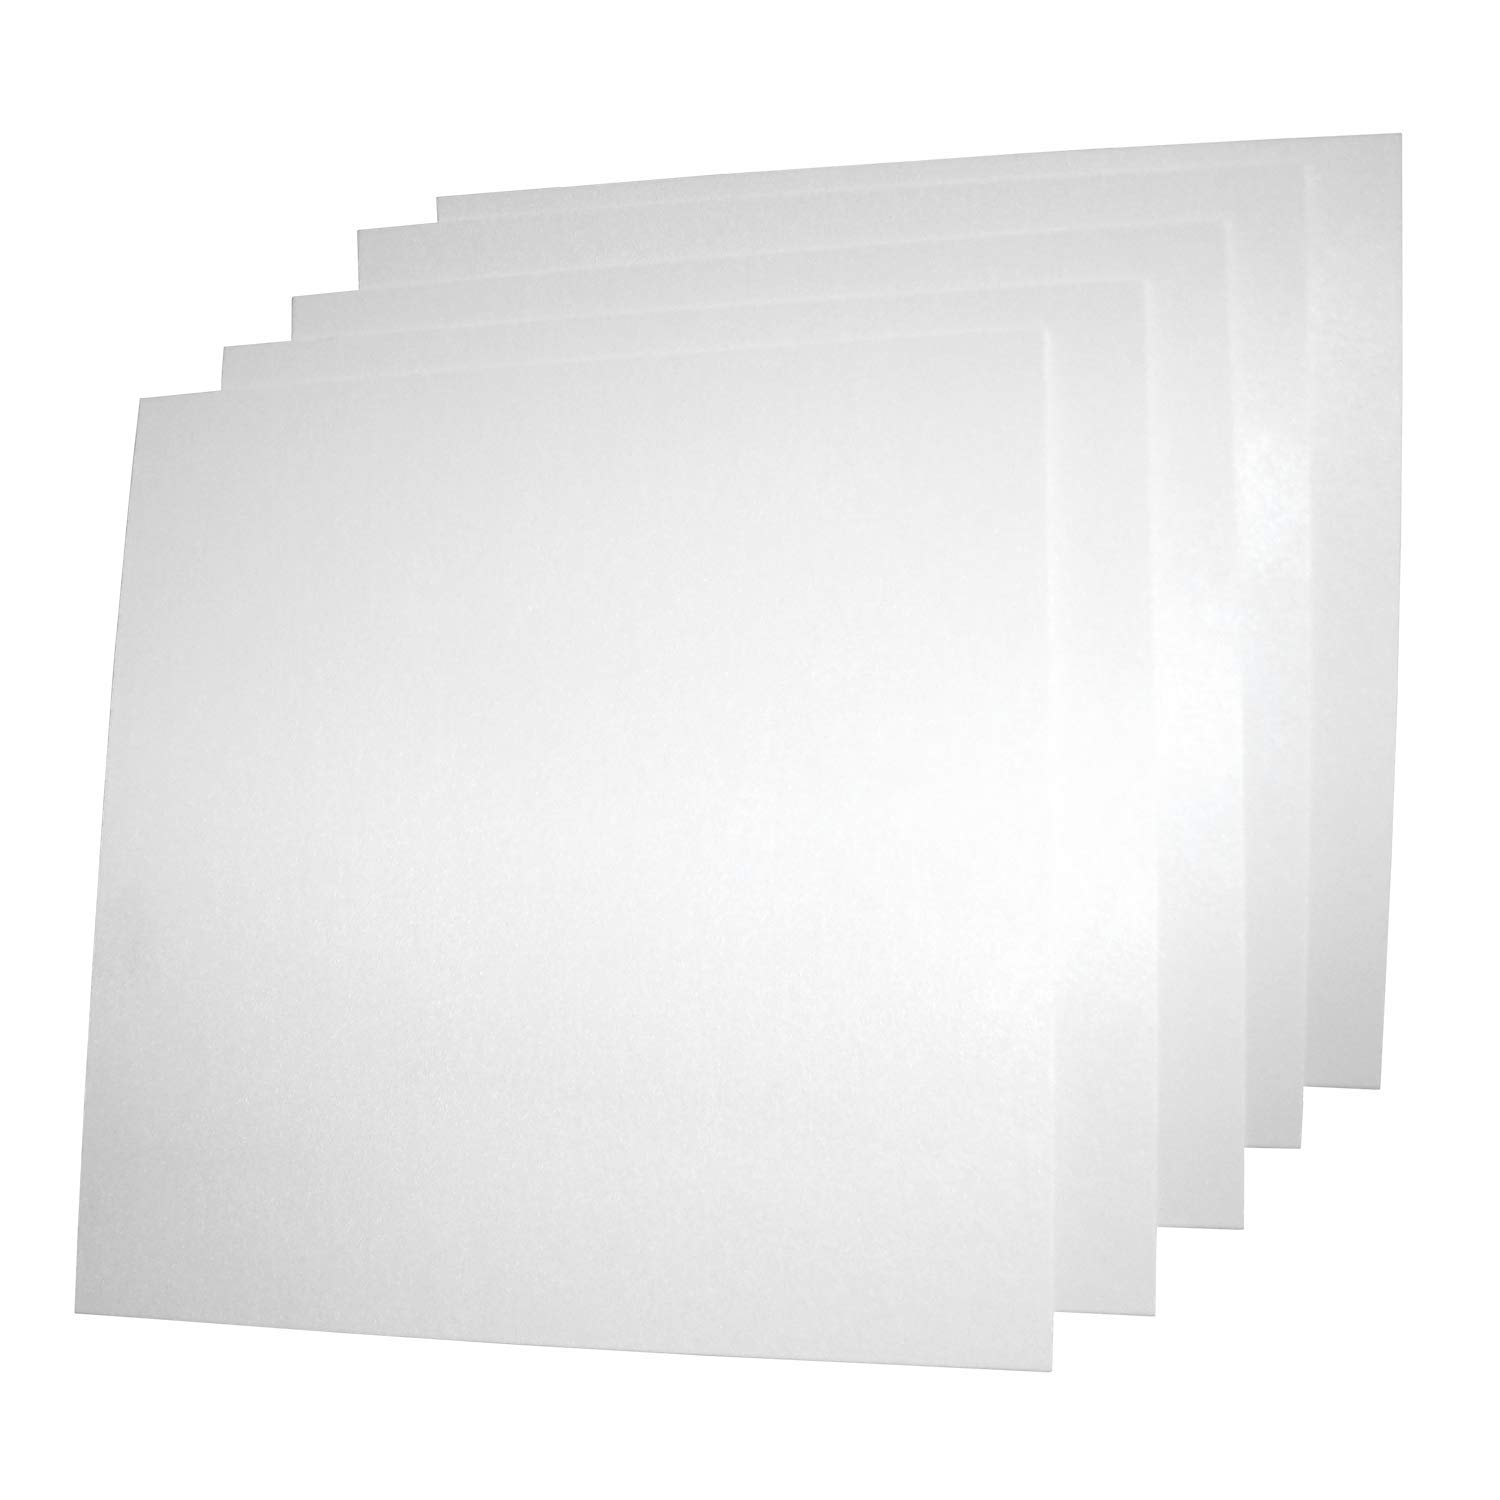 USAMADE's 5 Pack 12x12x.062 ABS Plastic Sheets, Moldable plastic sheets, Great for DIY projects, High Tensile and Impact Strength Plastic, Made in USA